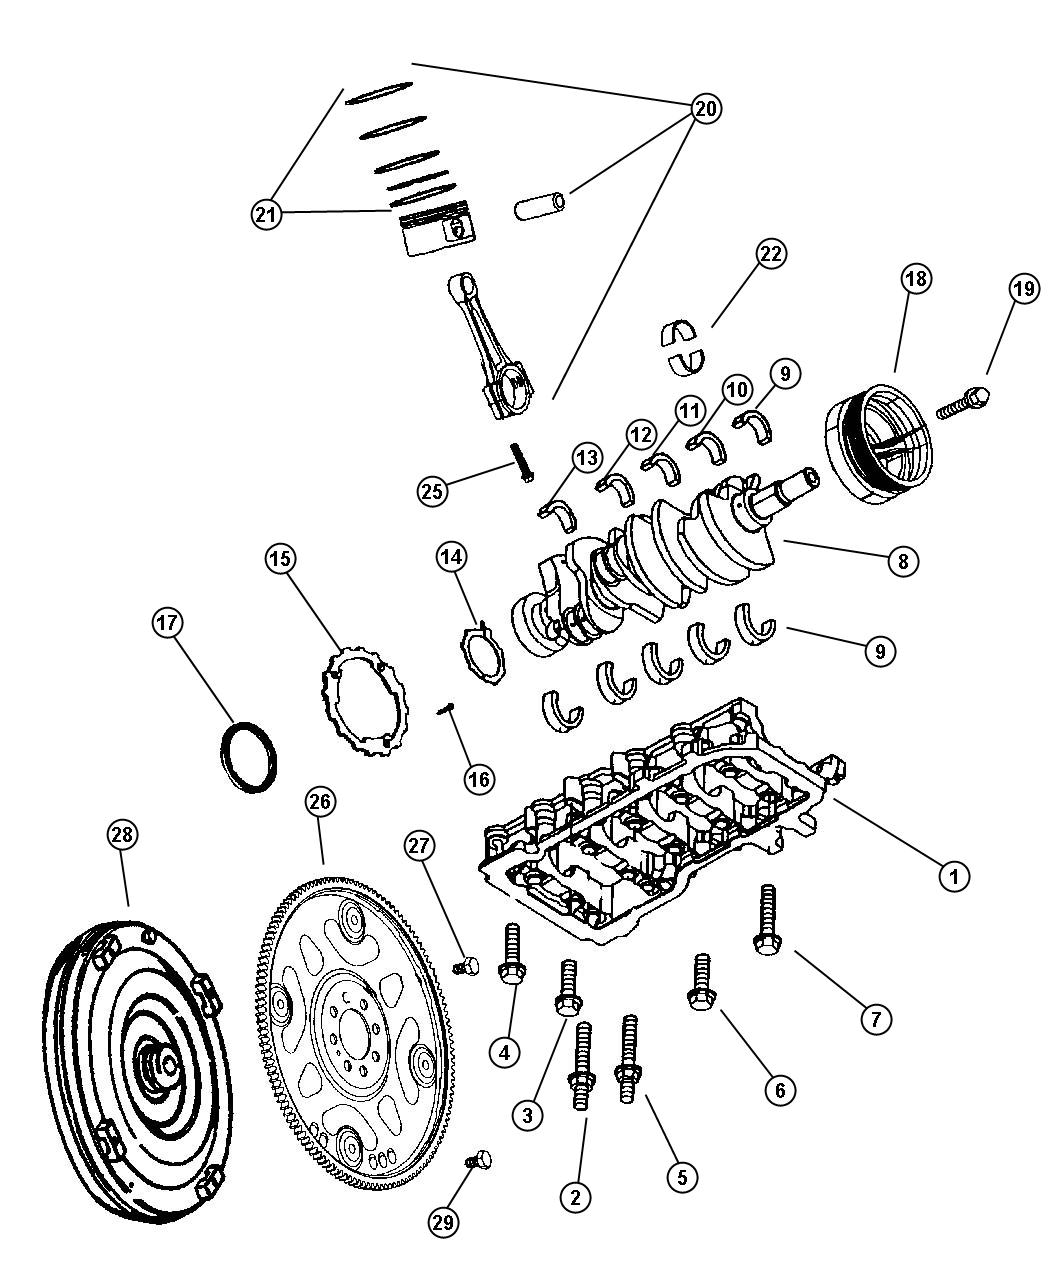 Service manual [Removing Torque Convertor 1996 Jeep